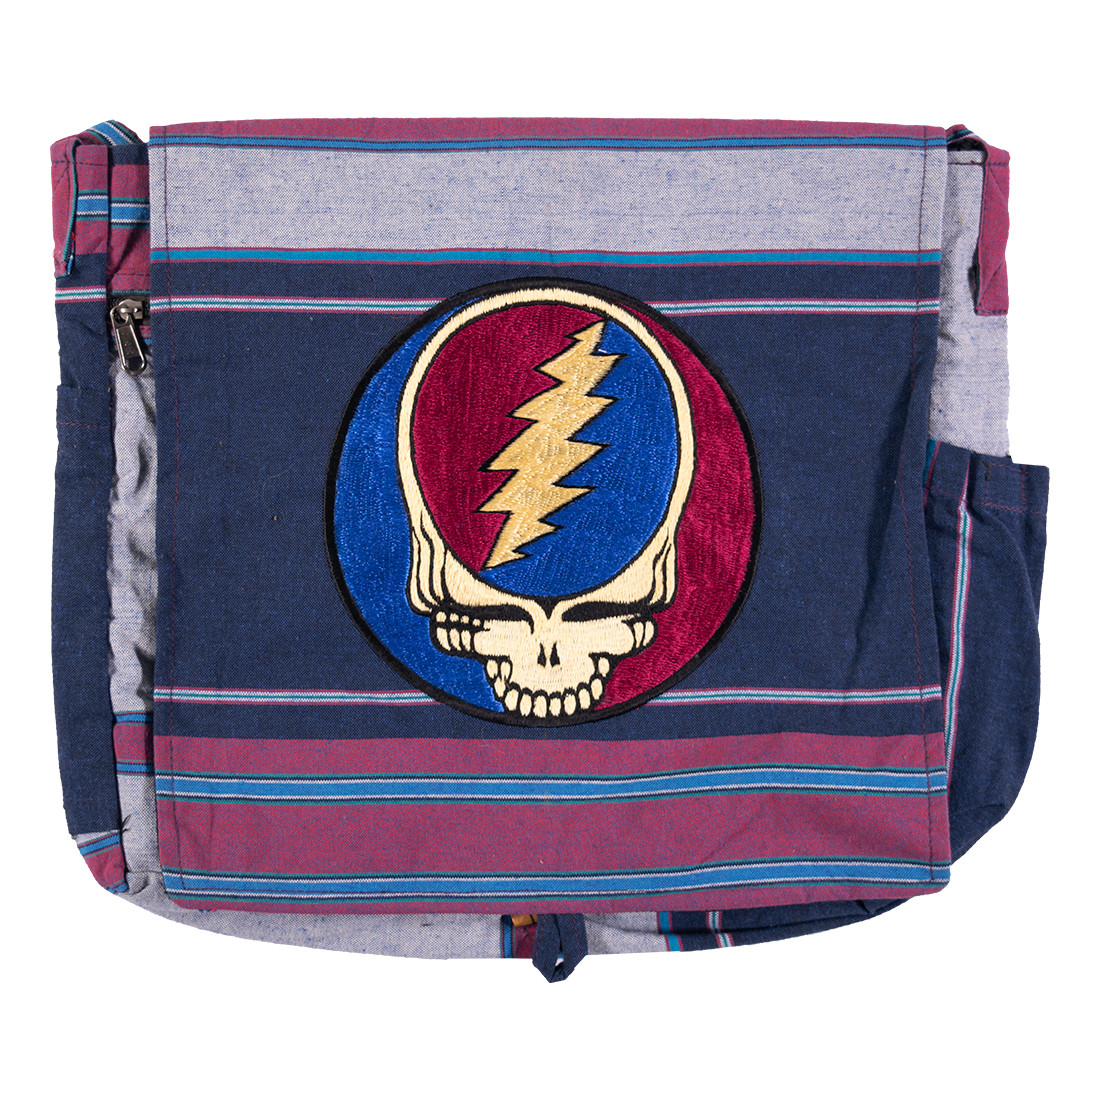 Steal Your Face Messenger Bag